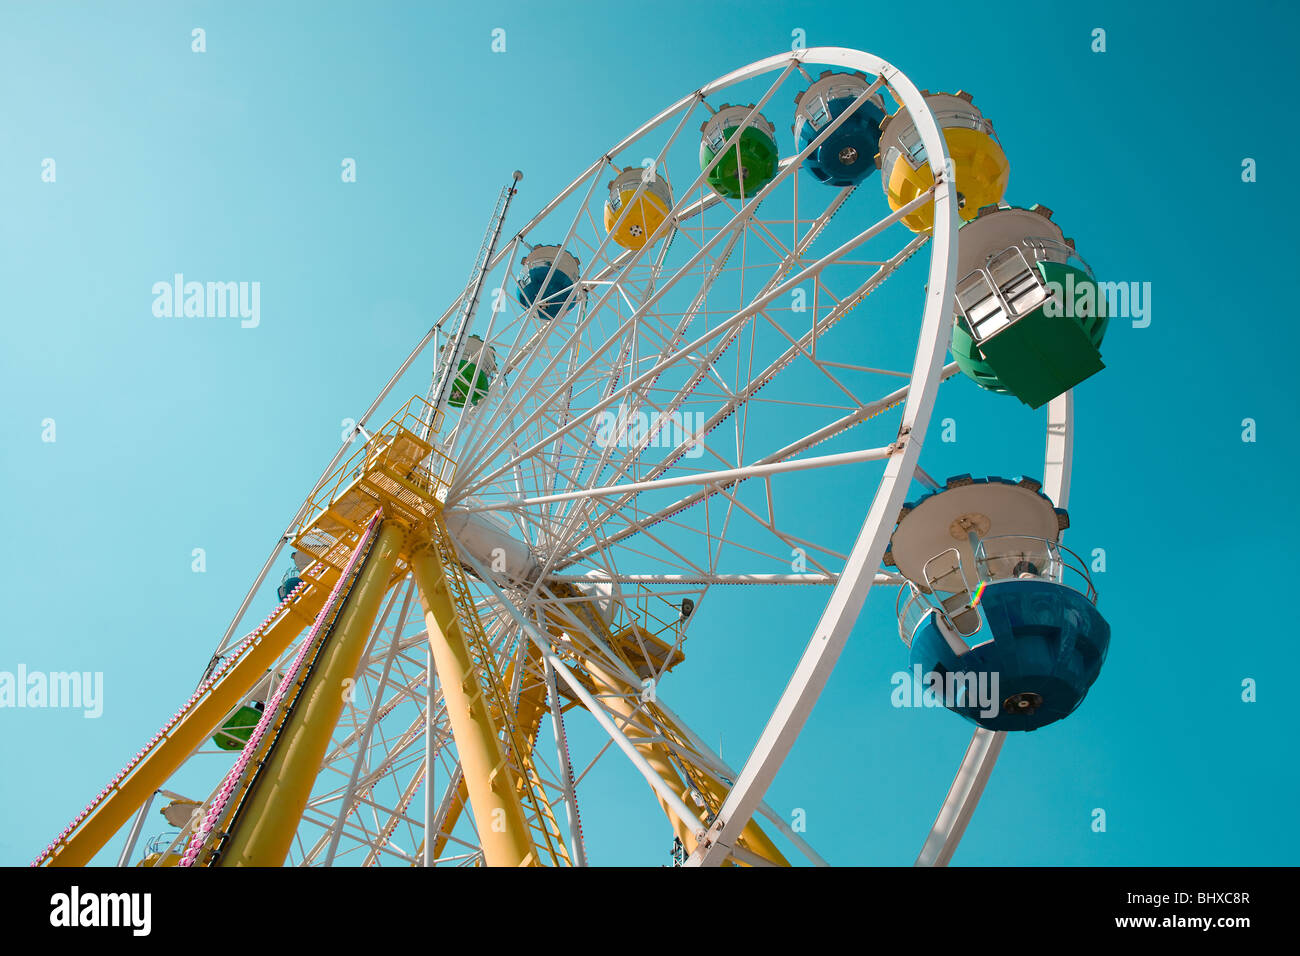 Ferris Wheel at amusement park - Stock Image